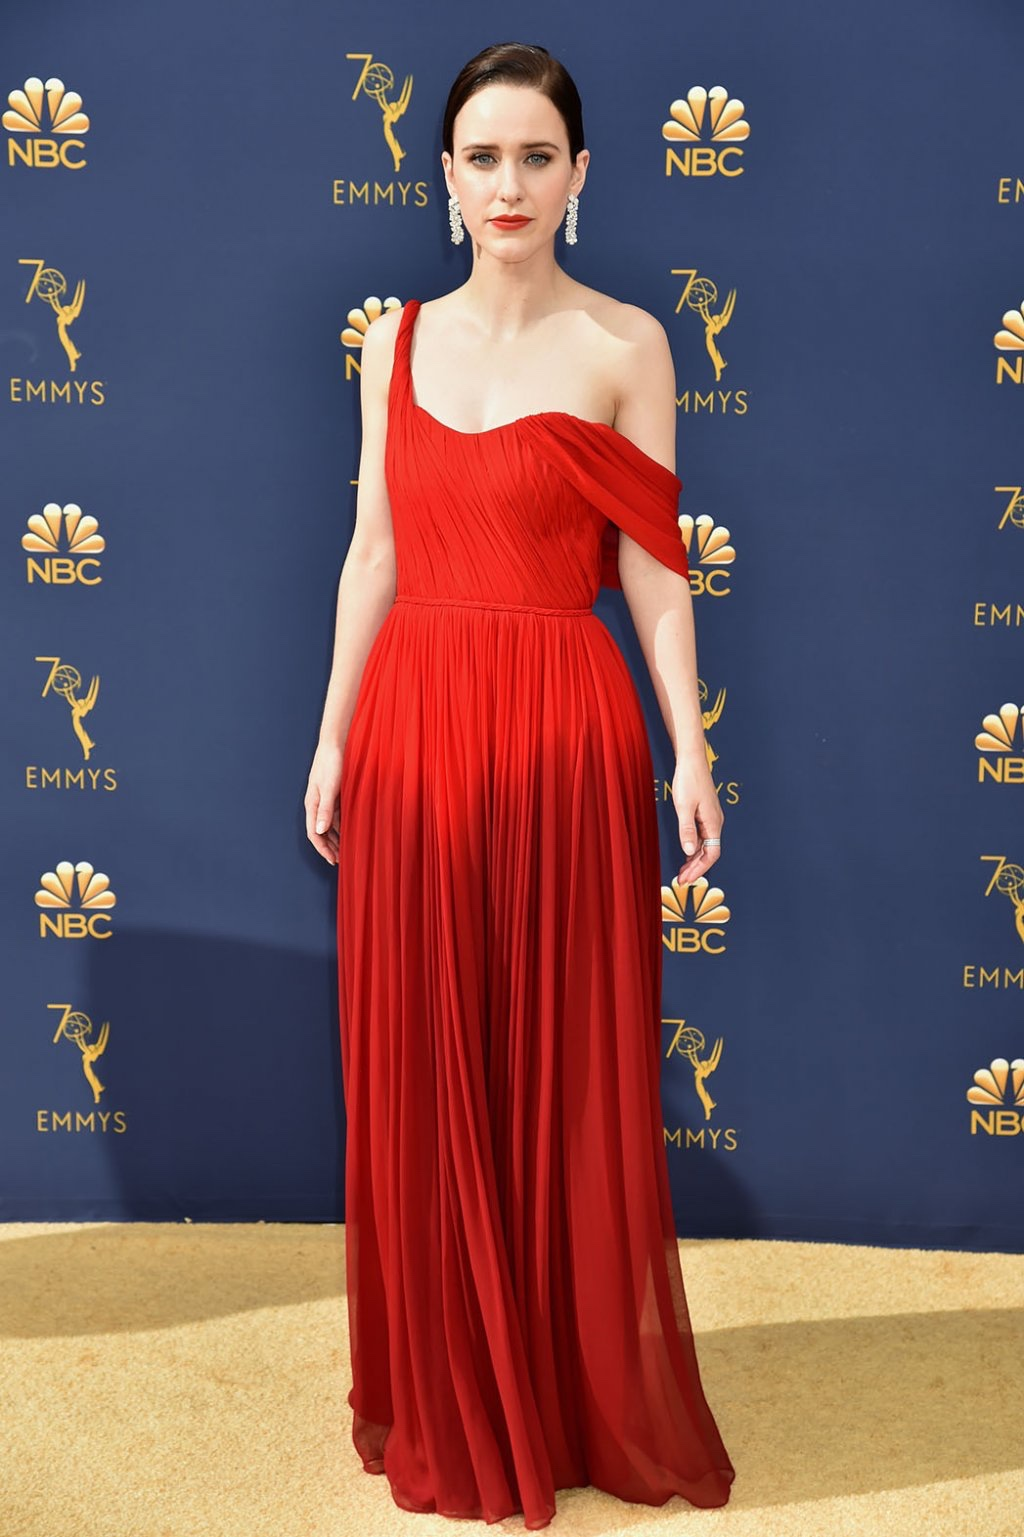 Rachel Brosnahan in Oscar de la Renta, 70th Annual Primetime Emmy Awards, Betty White, Emmys 2018, Fashion, Featured, Glenn Weiss, Hannah Gadsby, highlights, Jav Svendsen, Online Exclusive, Style, The Marvellous Mrs. Maisel, top moments, We solved it, Diversity